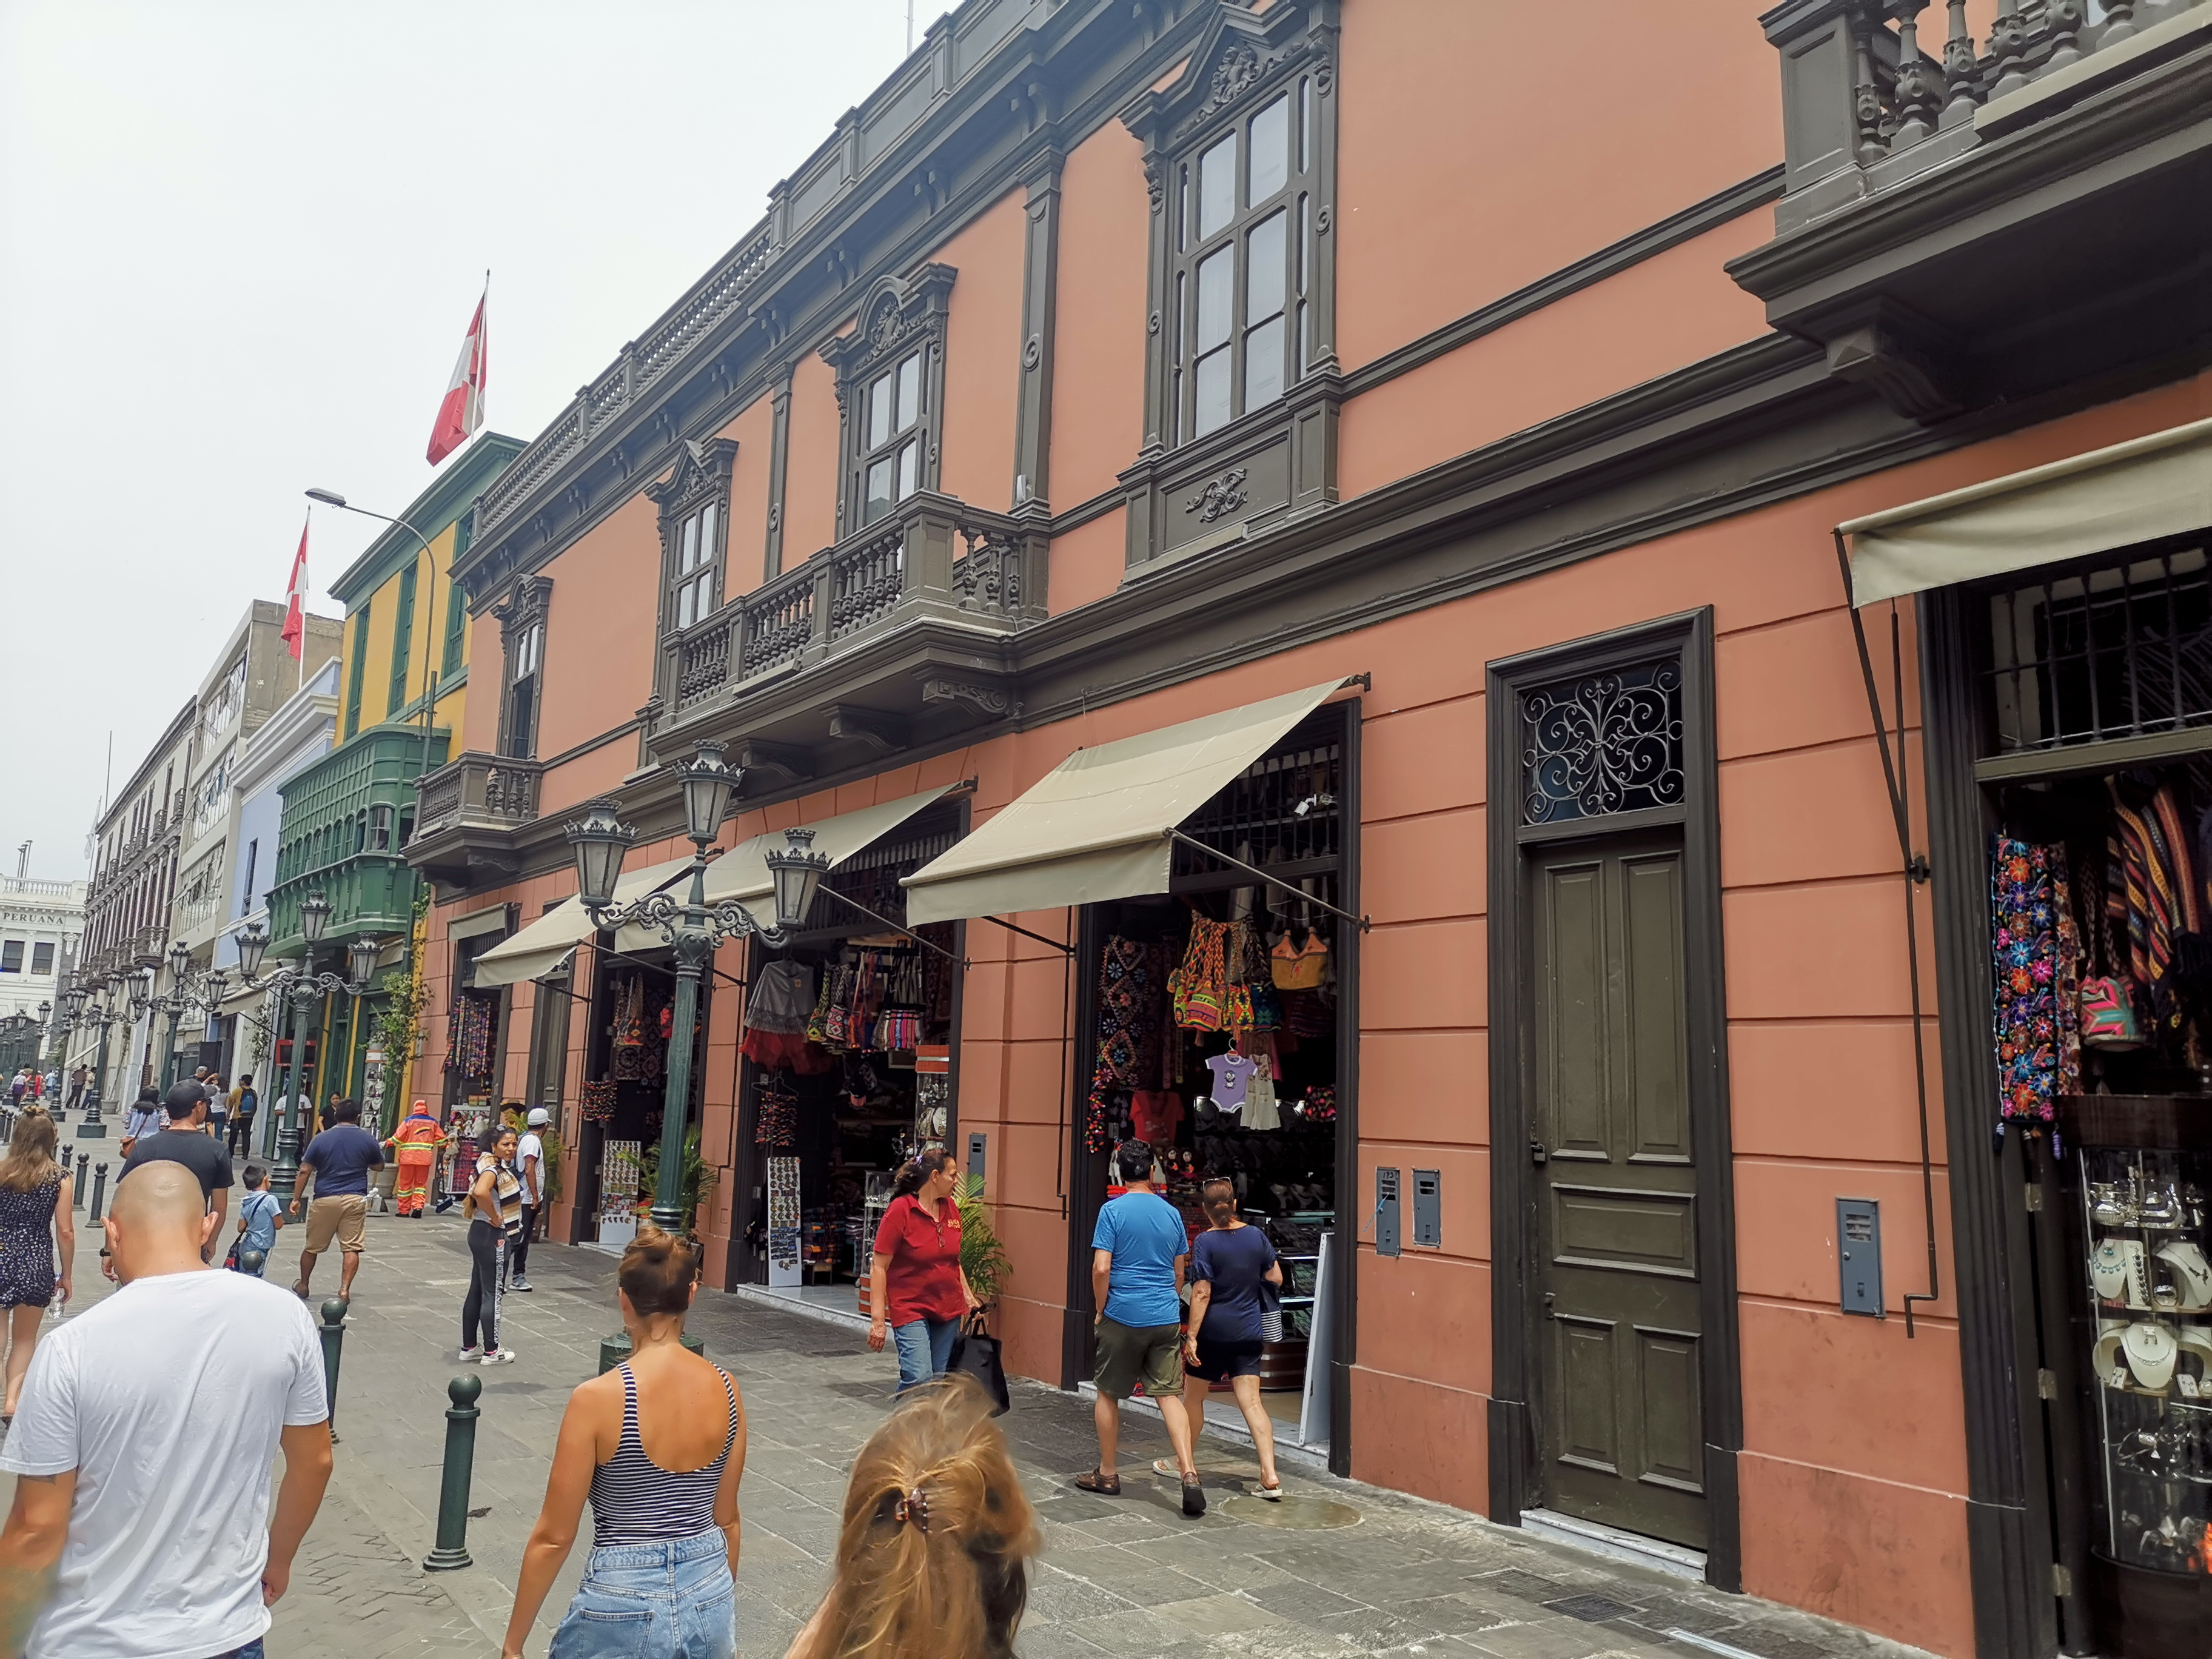 Peruvian reddish colonial buildings in Lima old-town